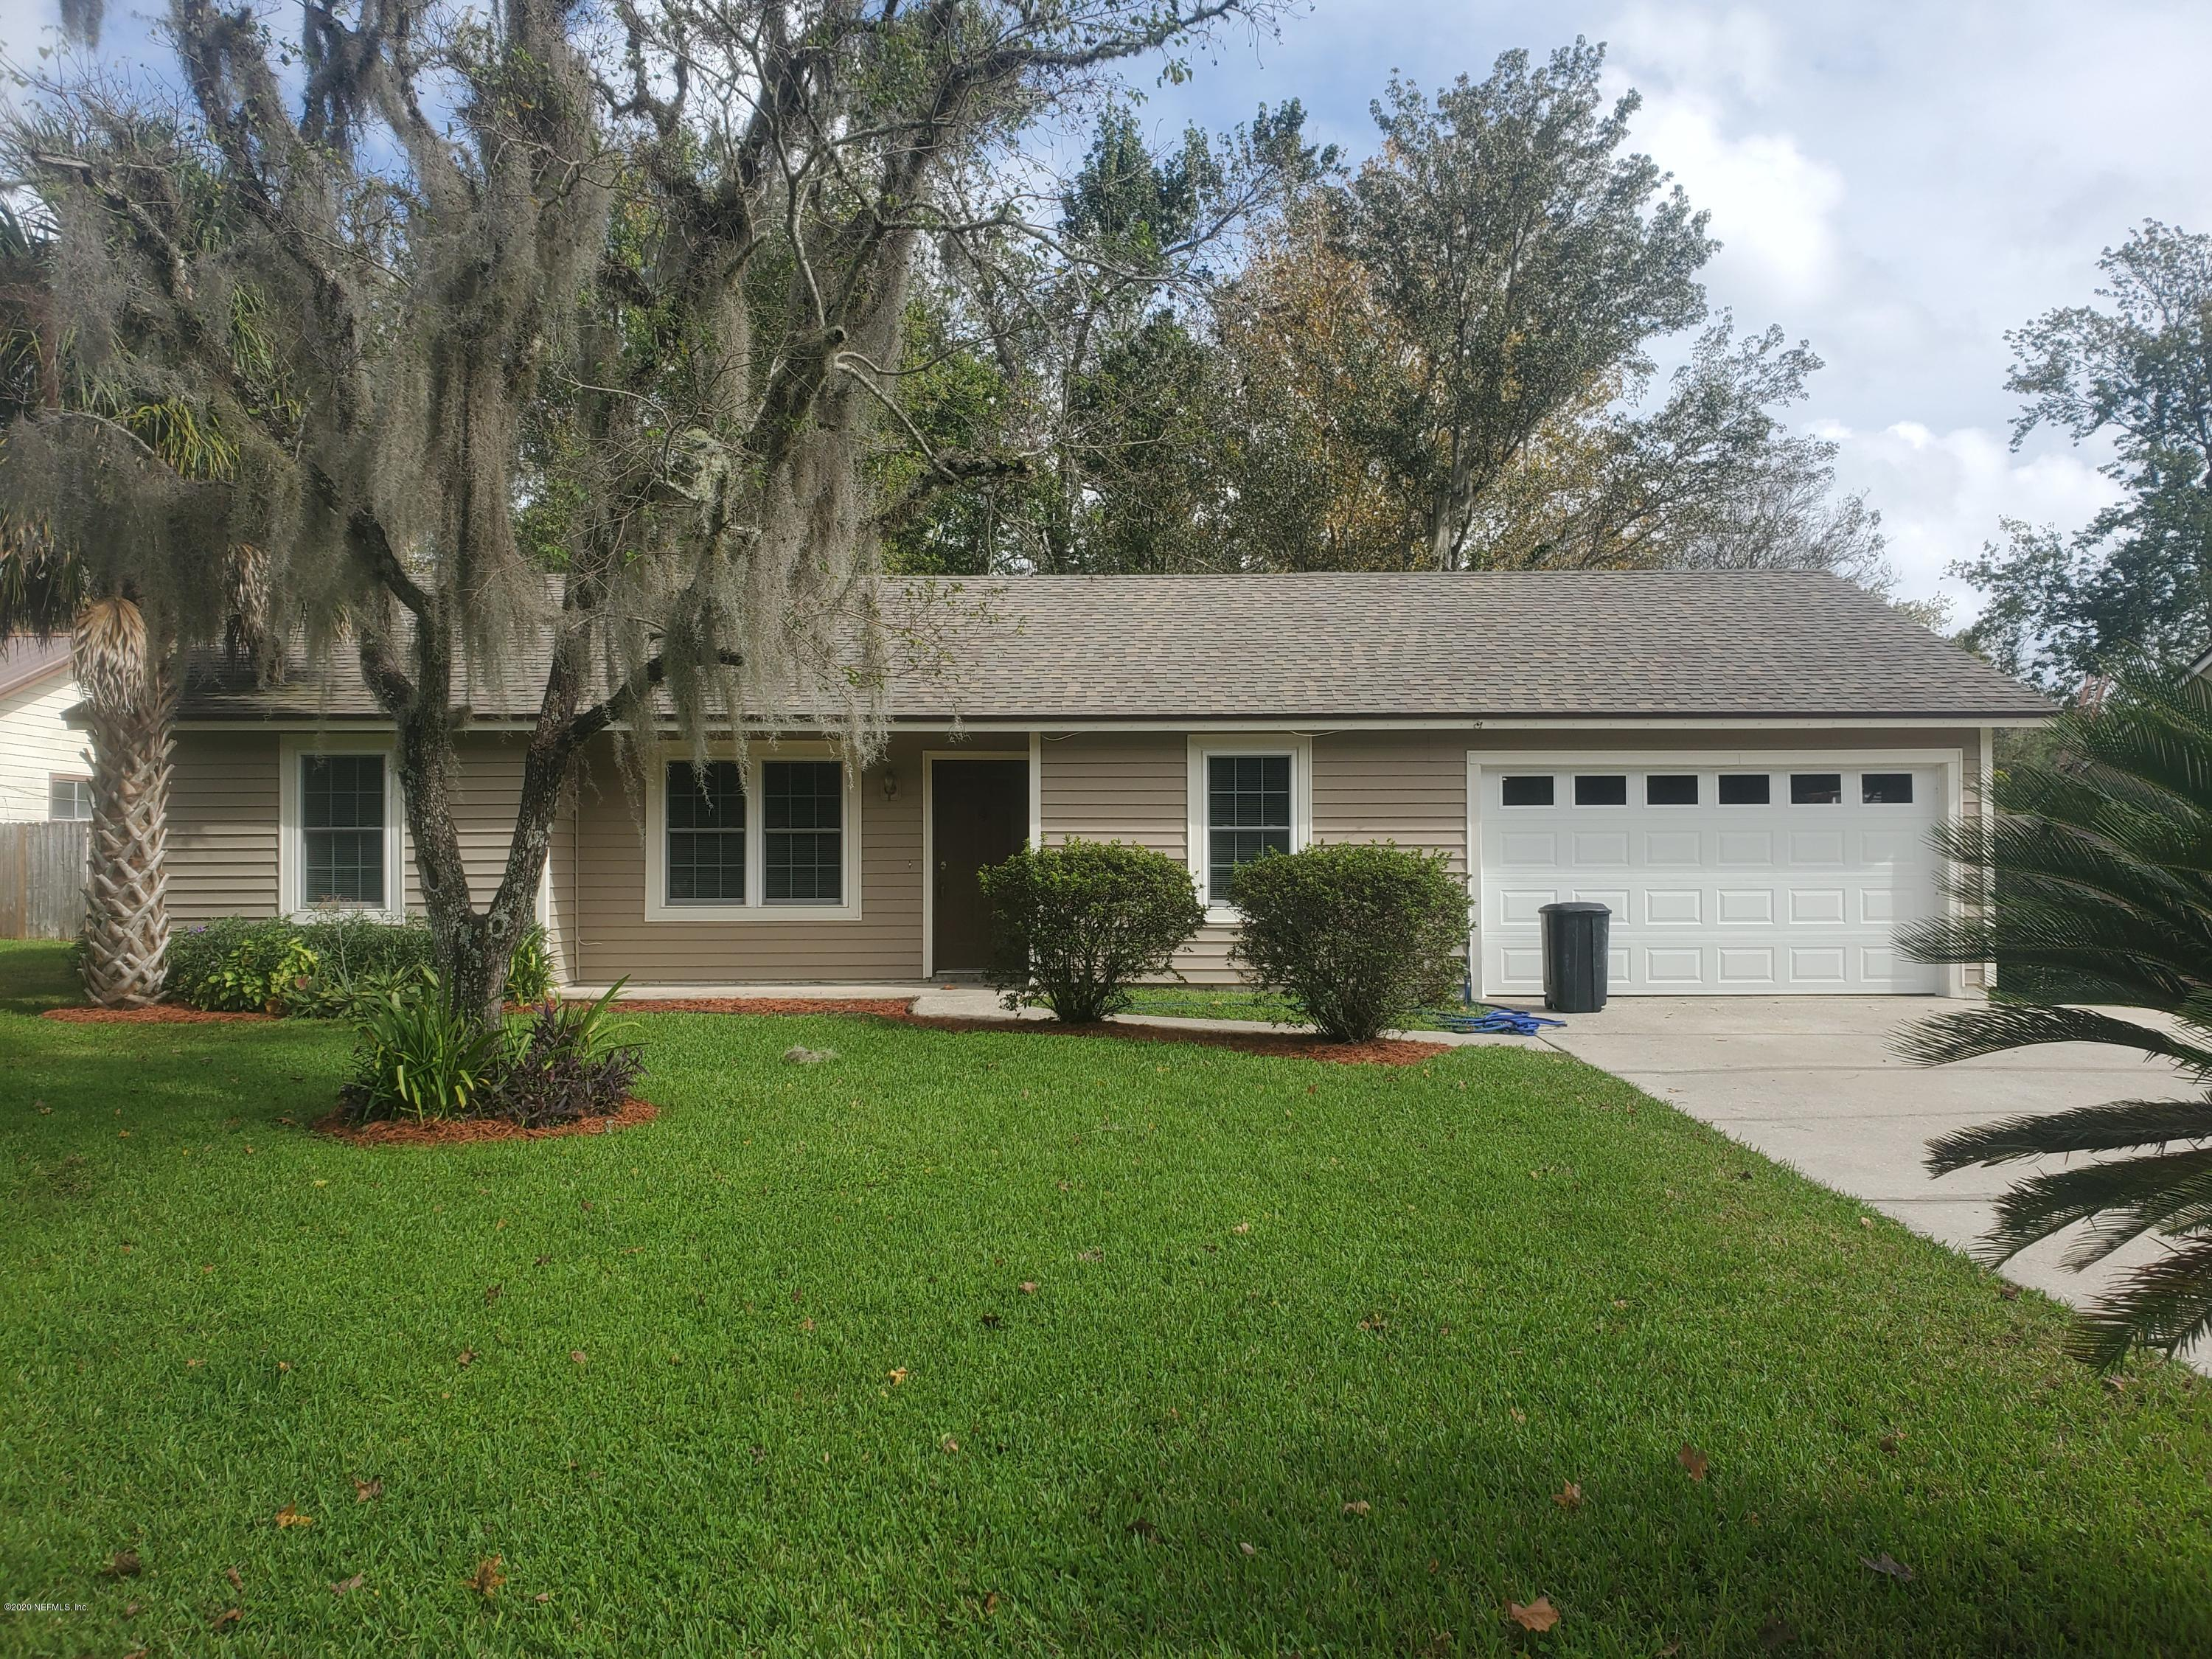 1711 SANDY HOLLOW, MIDDLEBURG, FLORIDA 32068, 3 Bedrooms Bedrooms, ,2 BathroomsBathrooms,Residential,For sale,SANDY HOLLOW,1081959